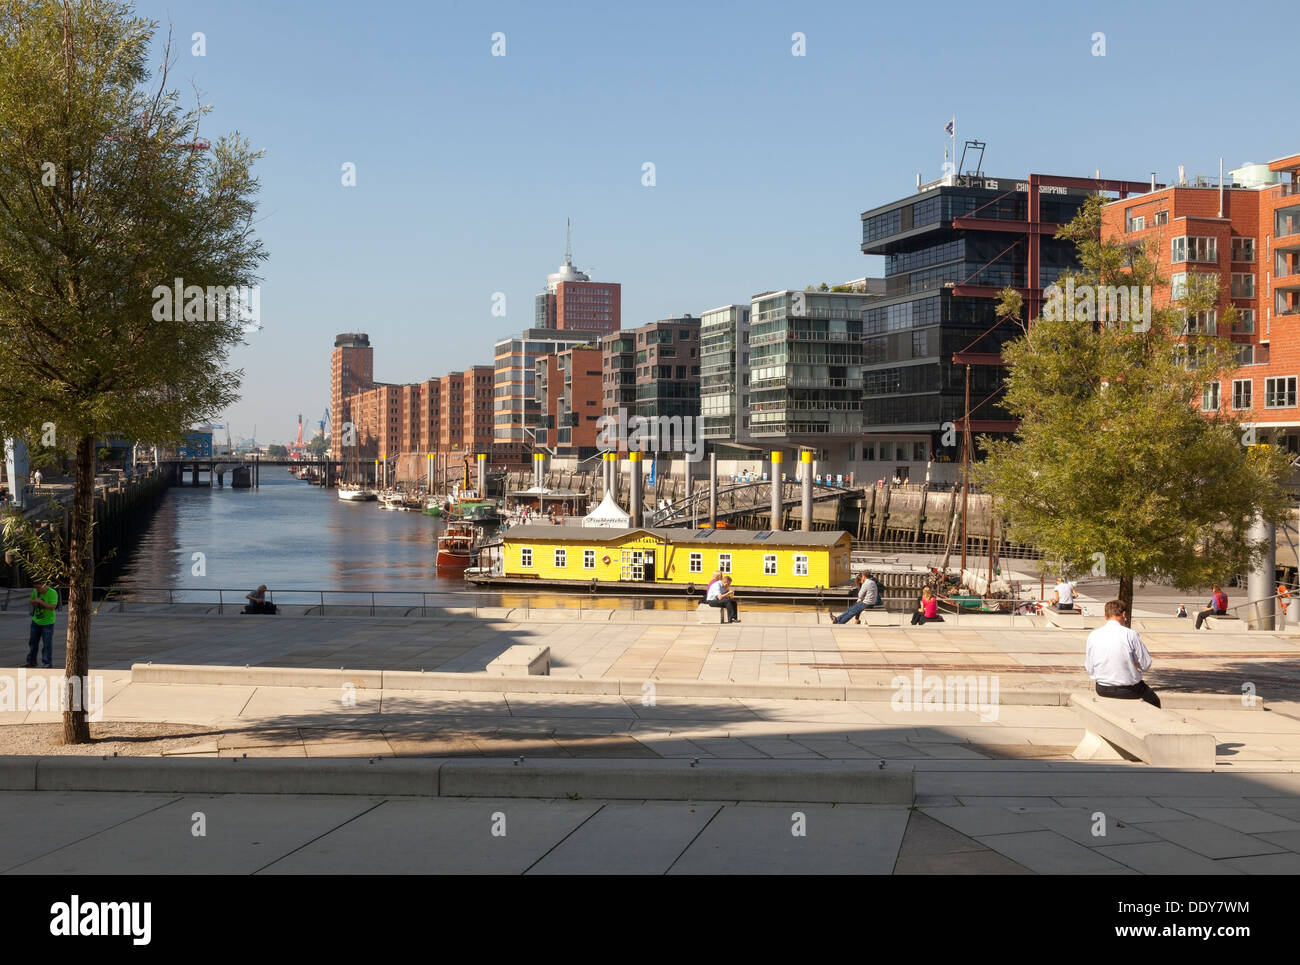 Hafen City, Am Sandtorkai / Dalmannkai quarter, Hamburg, Germany - Stock Image